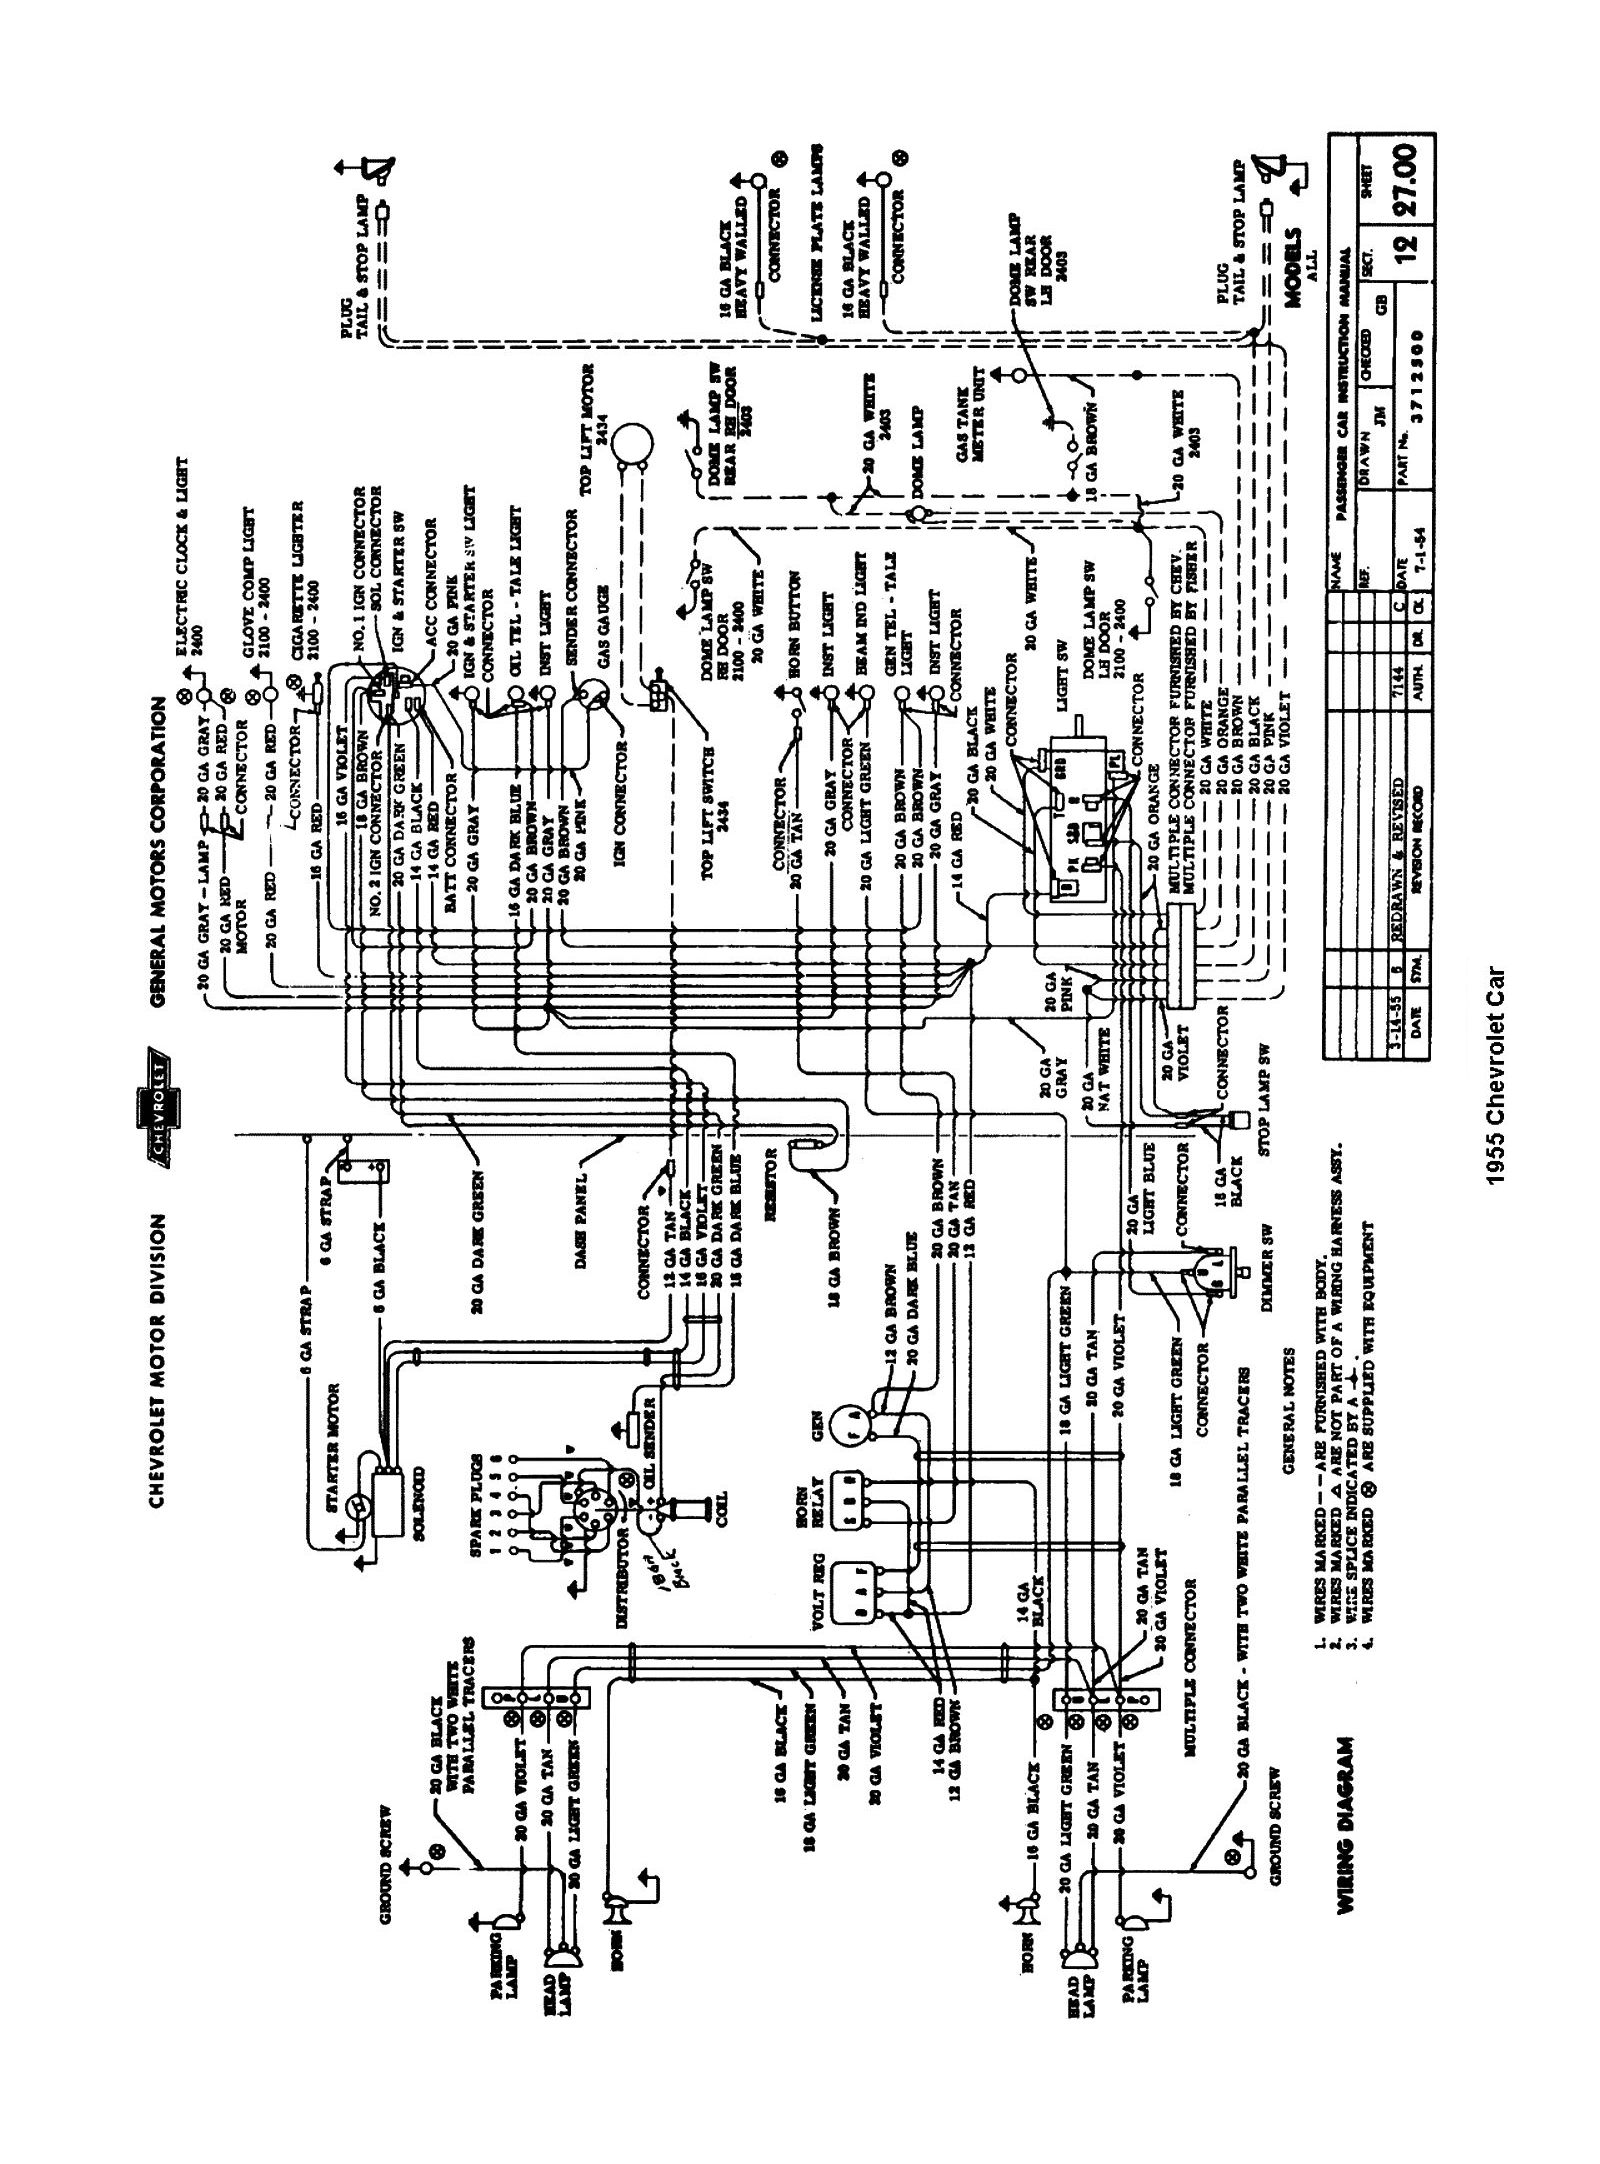 55car1 chevy wiring diagrams installation wiring diagram for industry at n-0.co